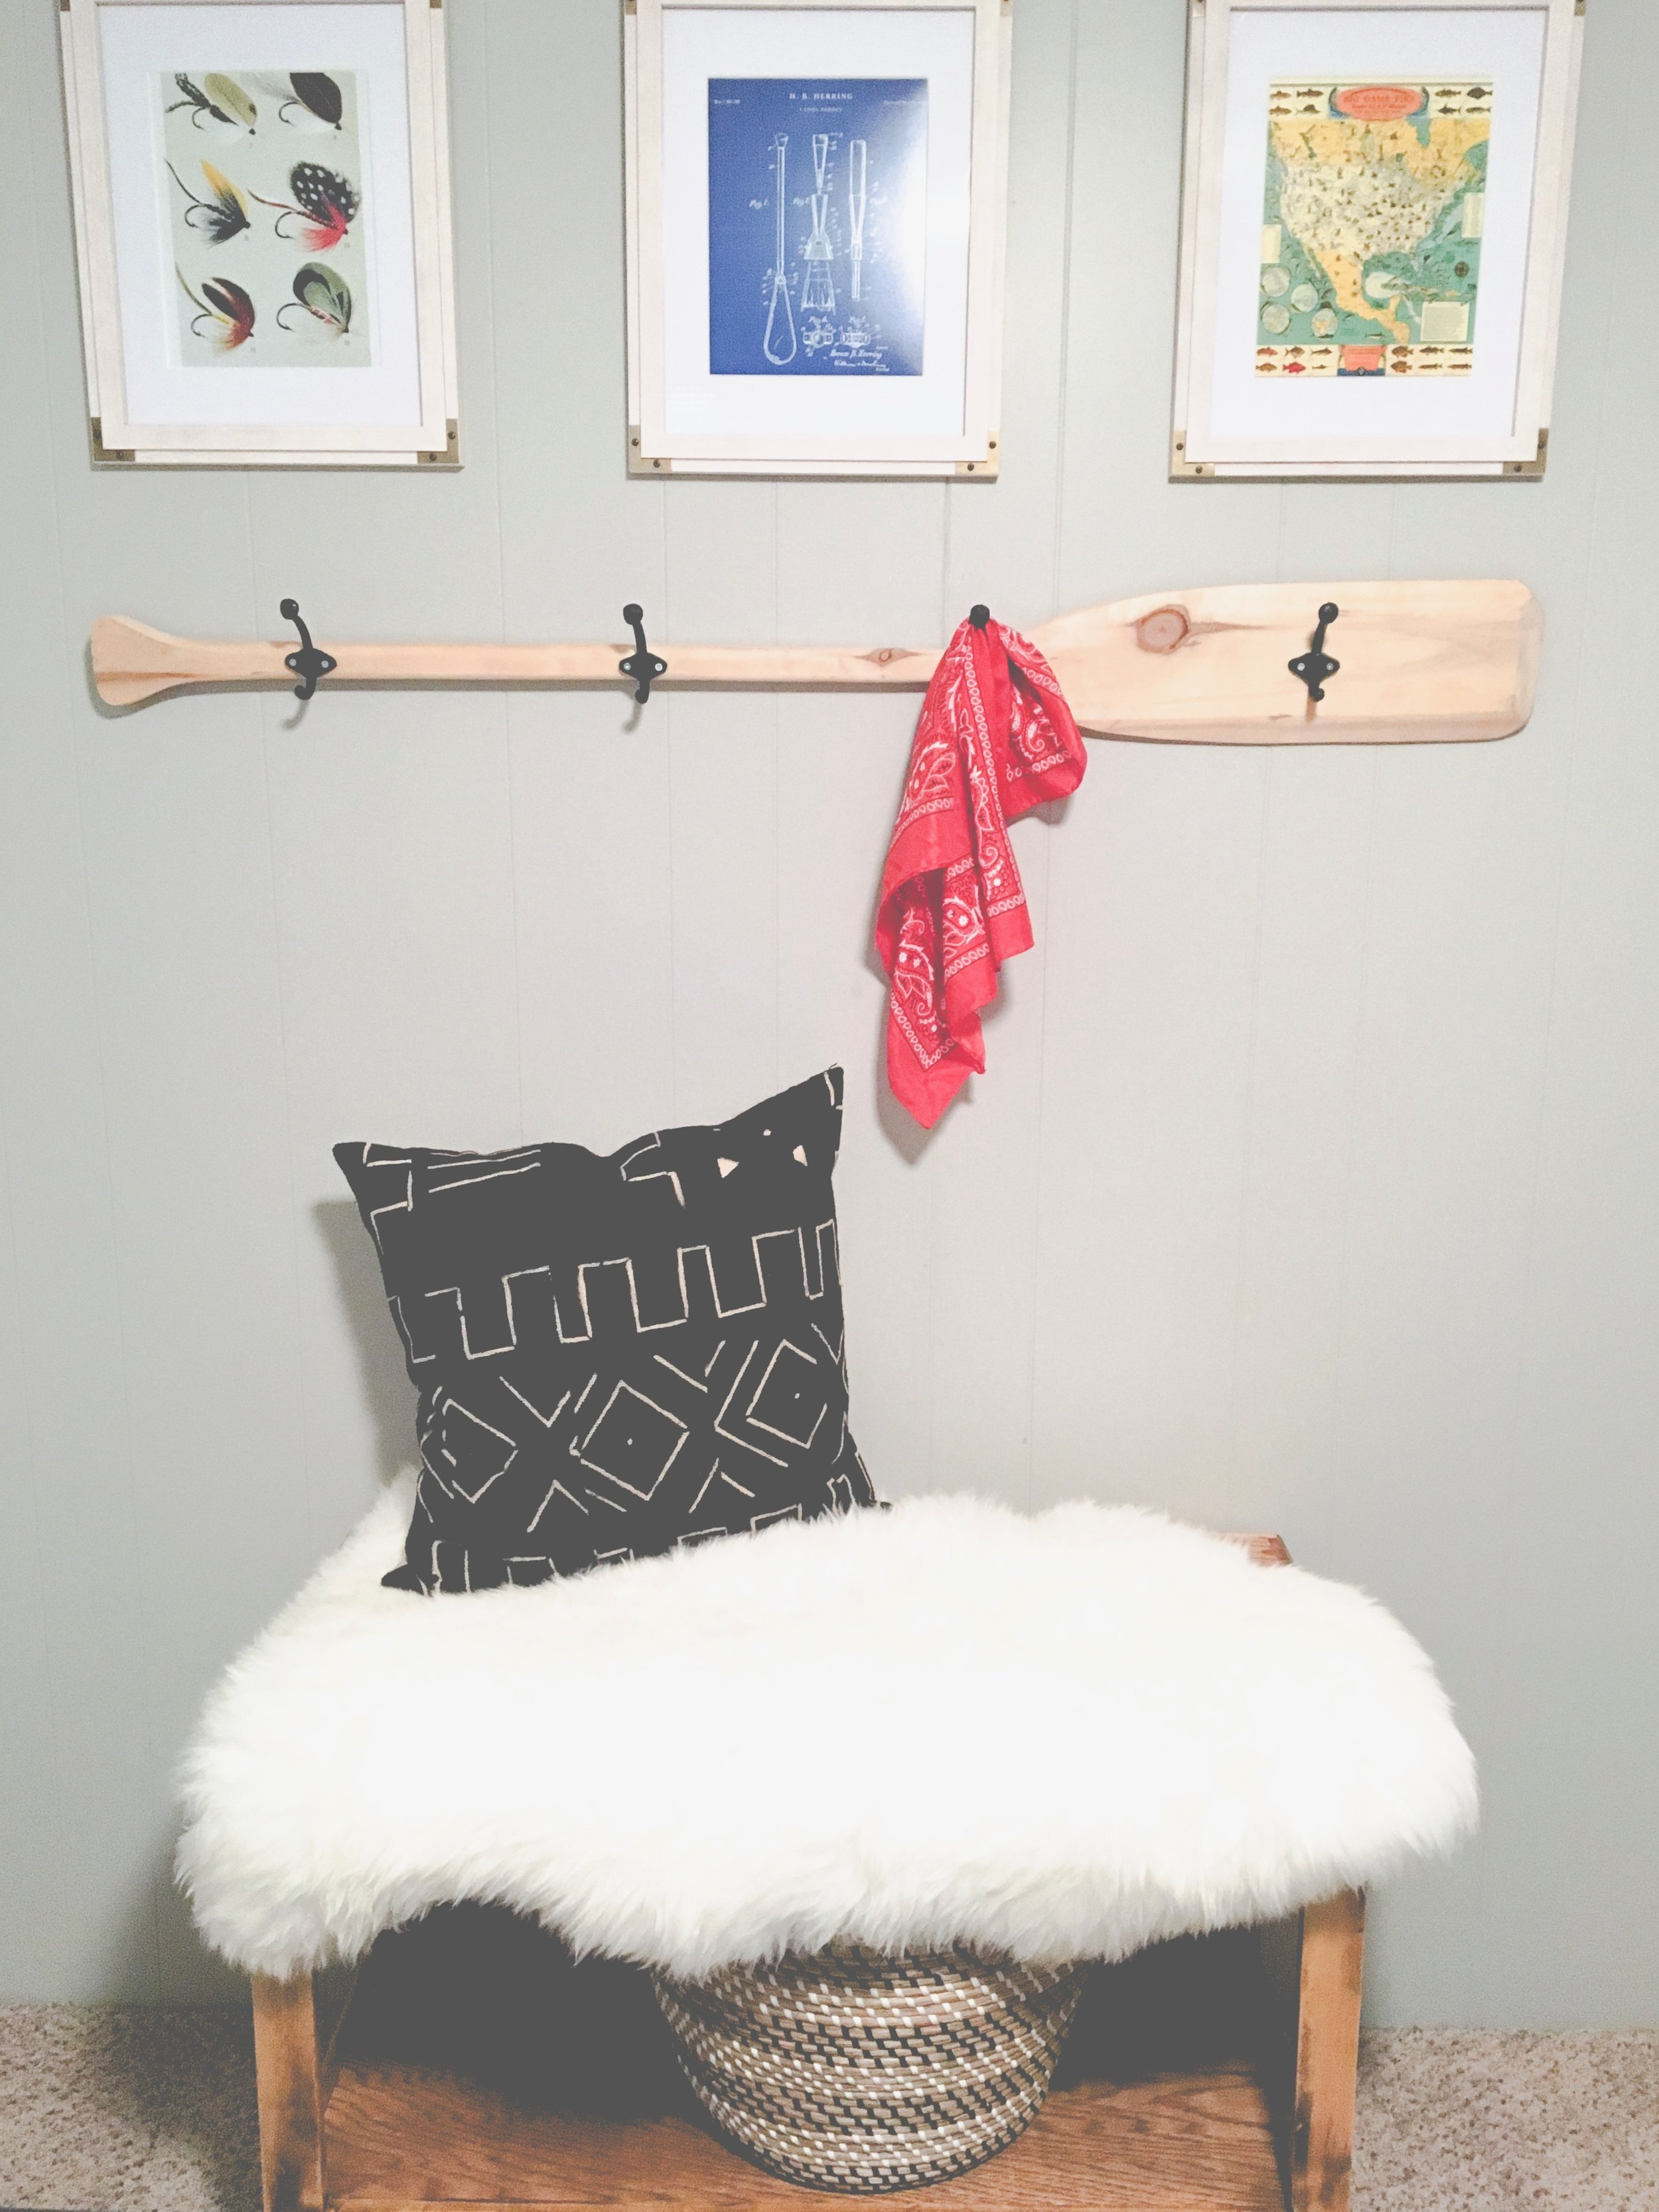 Our boring guest room gets a whole new modern cozy chic cabin look! Learn how to redecorate your guest room so it feels cozy and welcoming. This wooden oar hook and vintage fishing prints are a great touch.